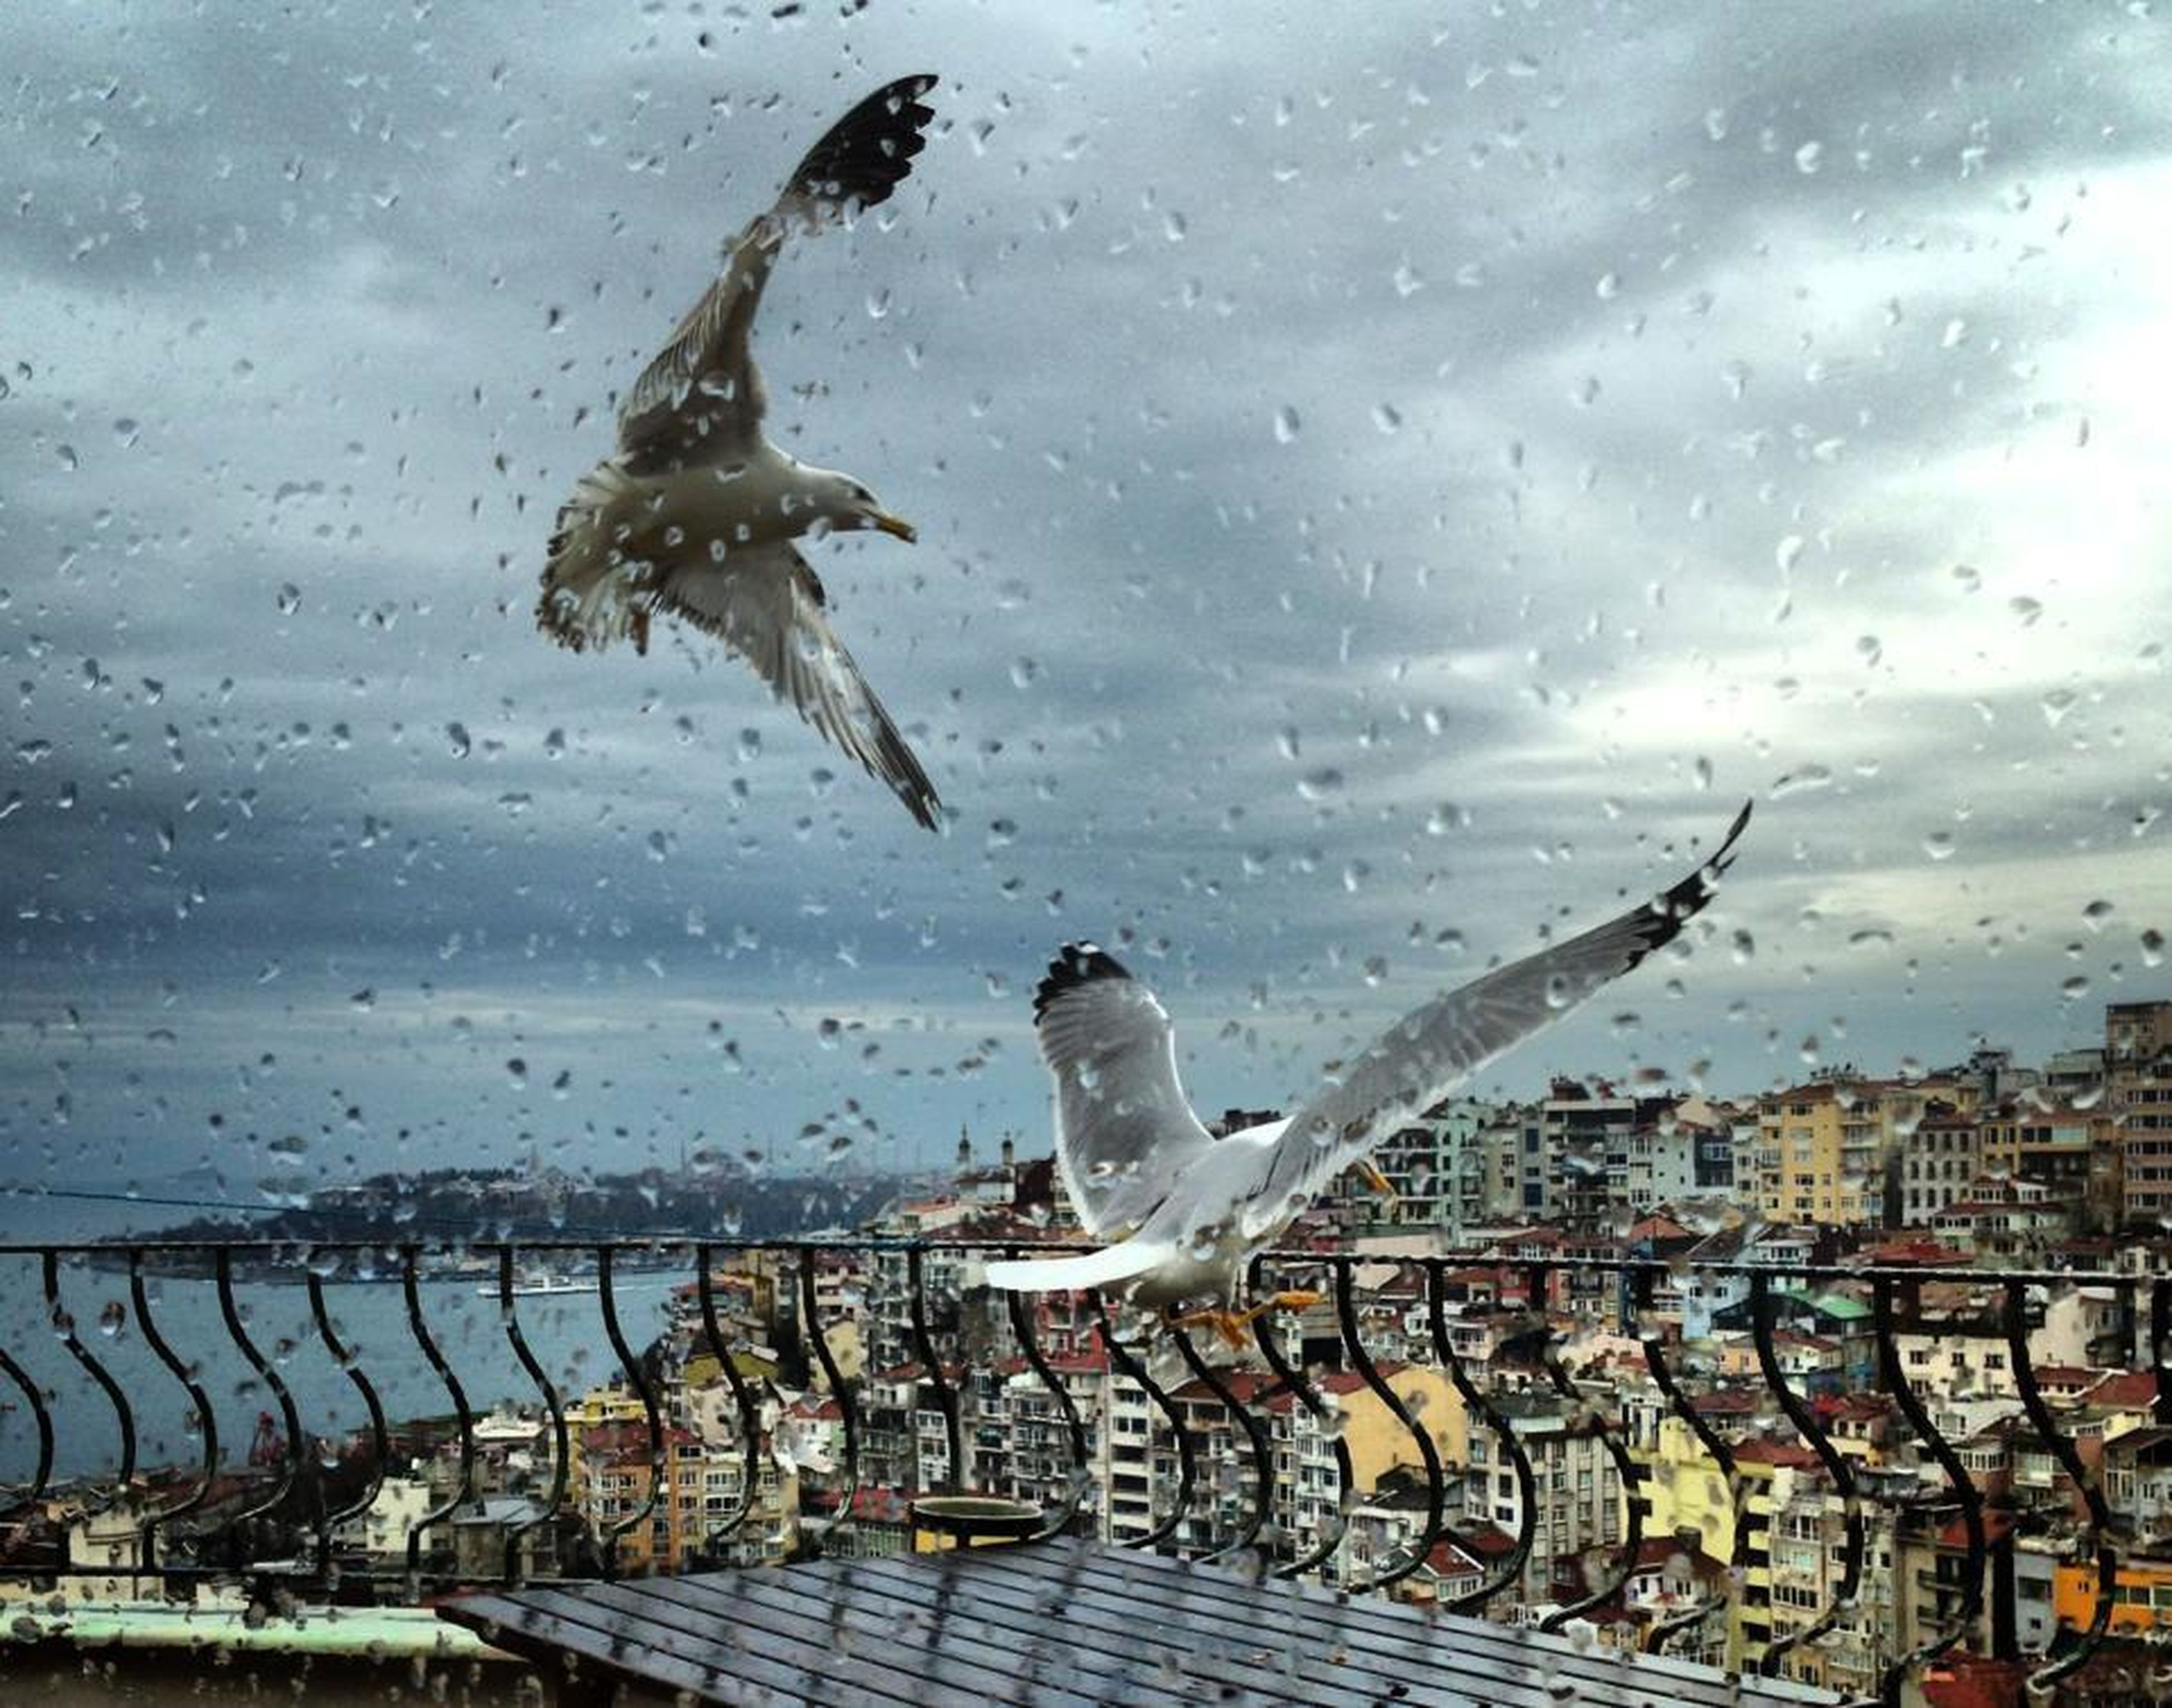 bird, animals in the wild, building exterior, sky, animal themes, built structure, architecture, flying, wildlife, cloud - sky, water, city, one animal, pigeon, cloudy, cloud, spread wings, mid-air, day, cityscape